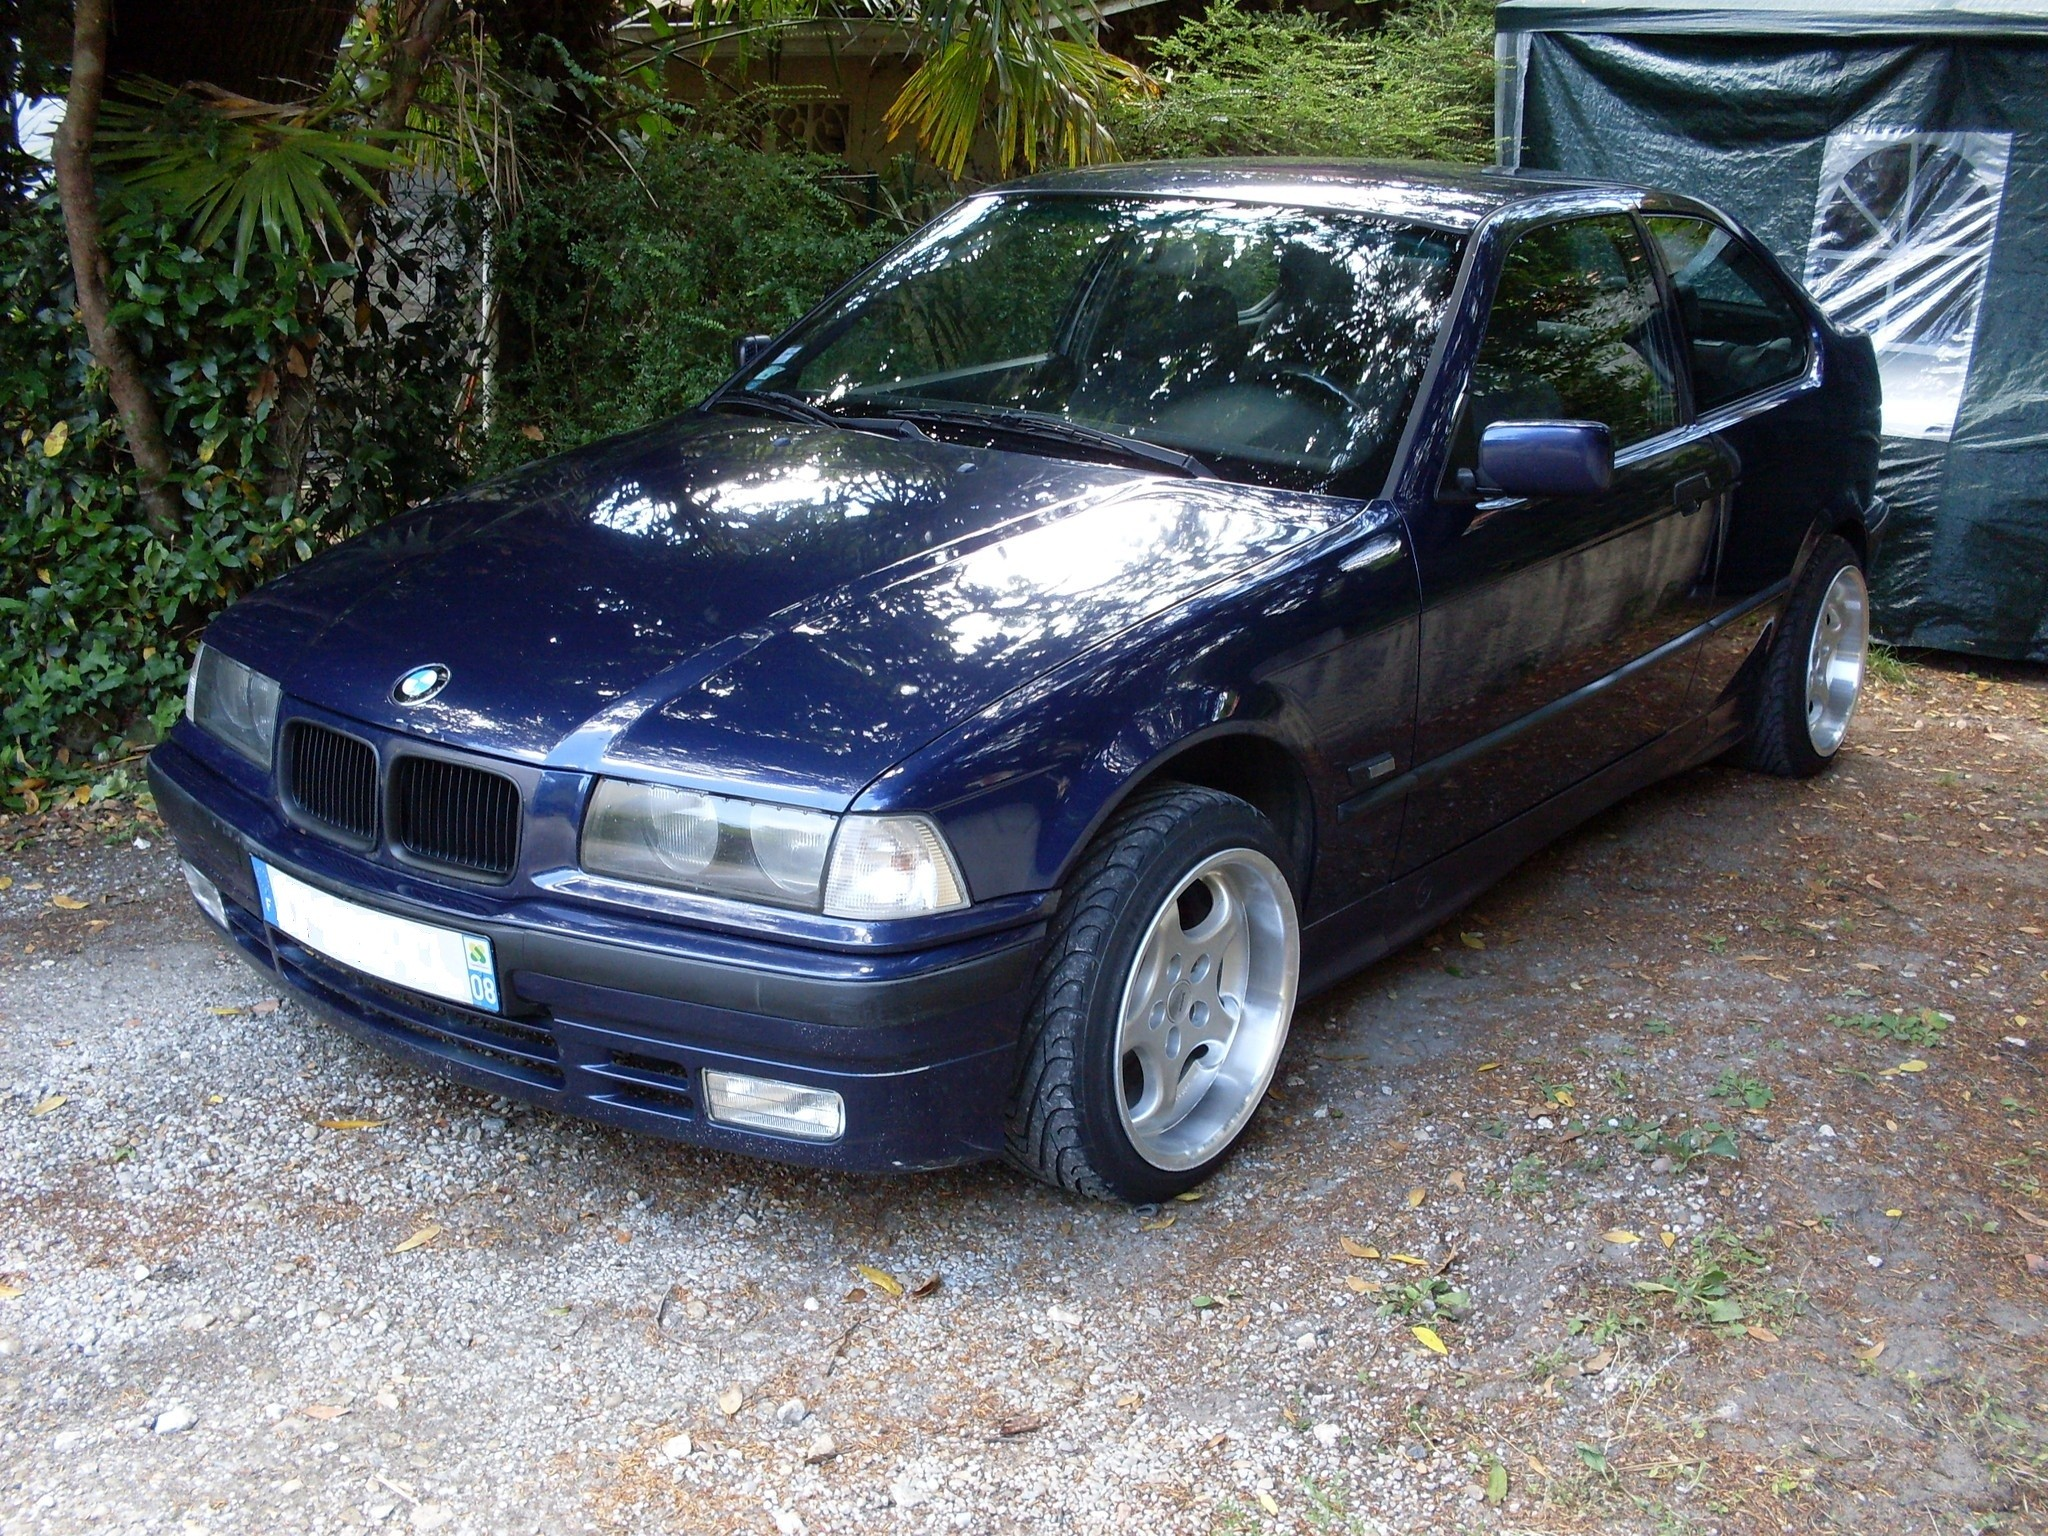 restauration bmw e36 compact futur modif en cours auto. Black Bedroom Furniture Sets. Home Design Ideas